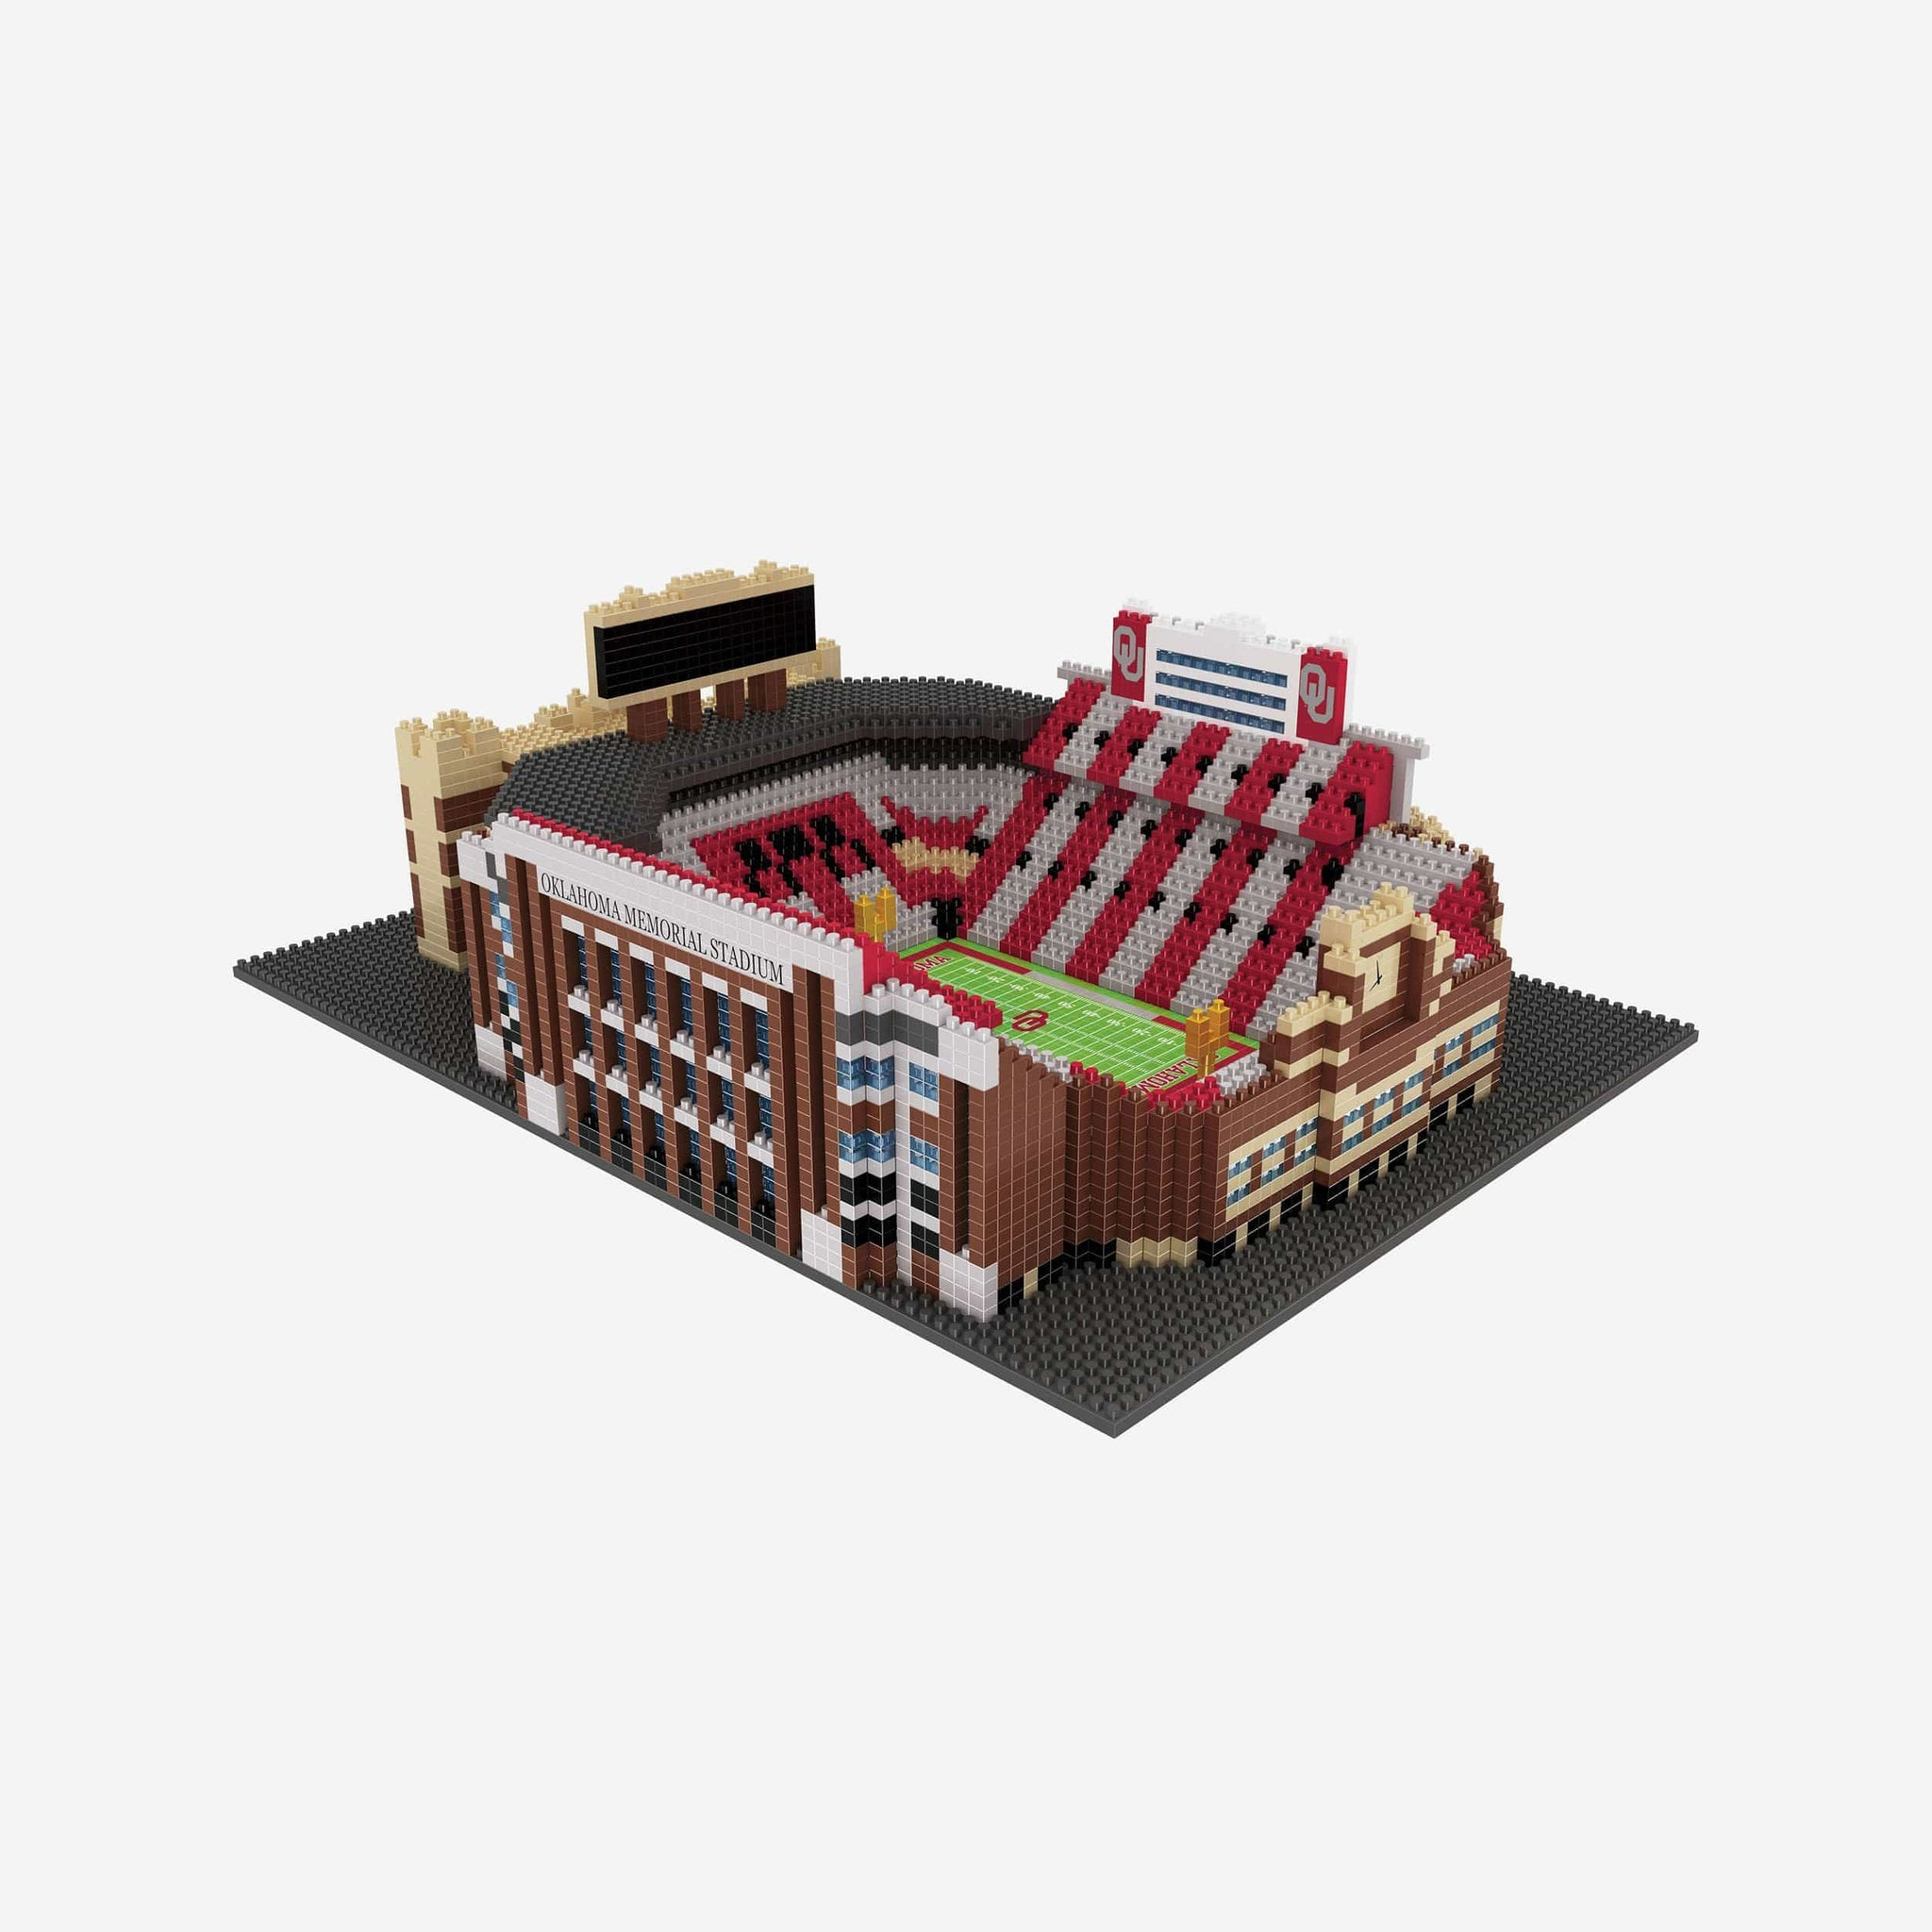 Oklahoma Sooners The Gaylord Family Oklahoma Memorial BRXLZ Stadium